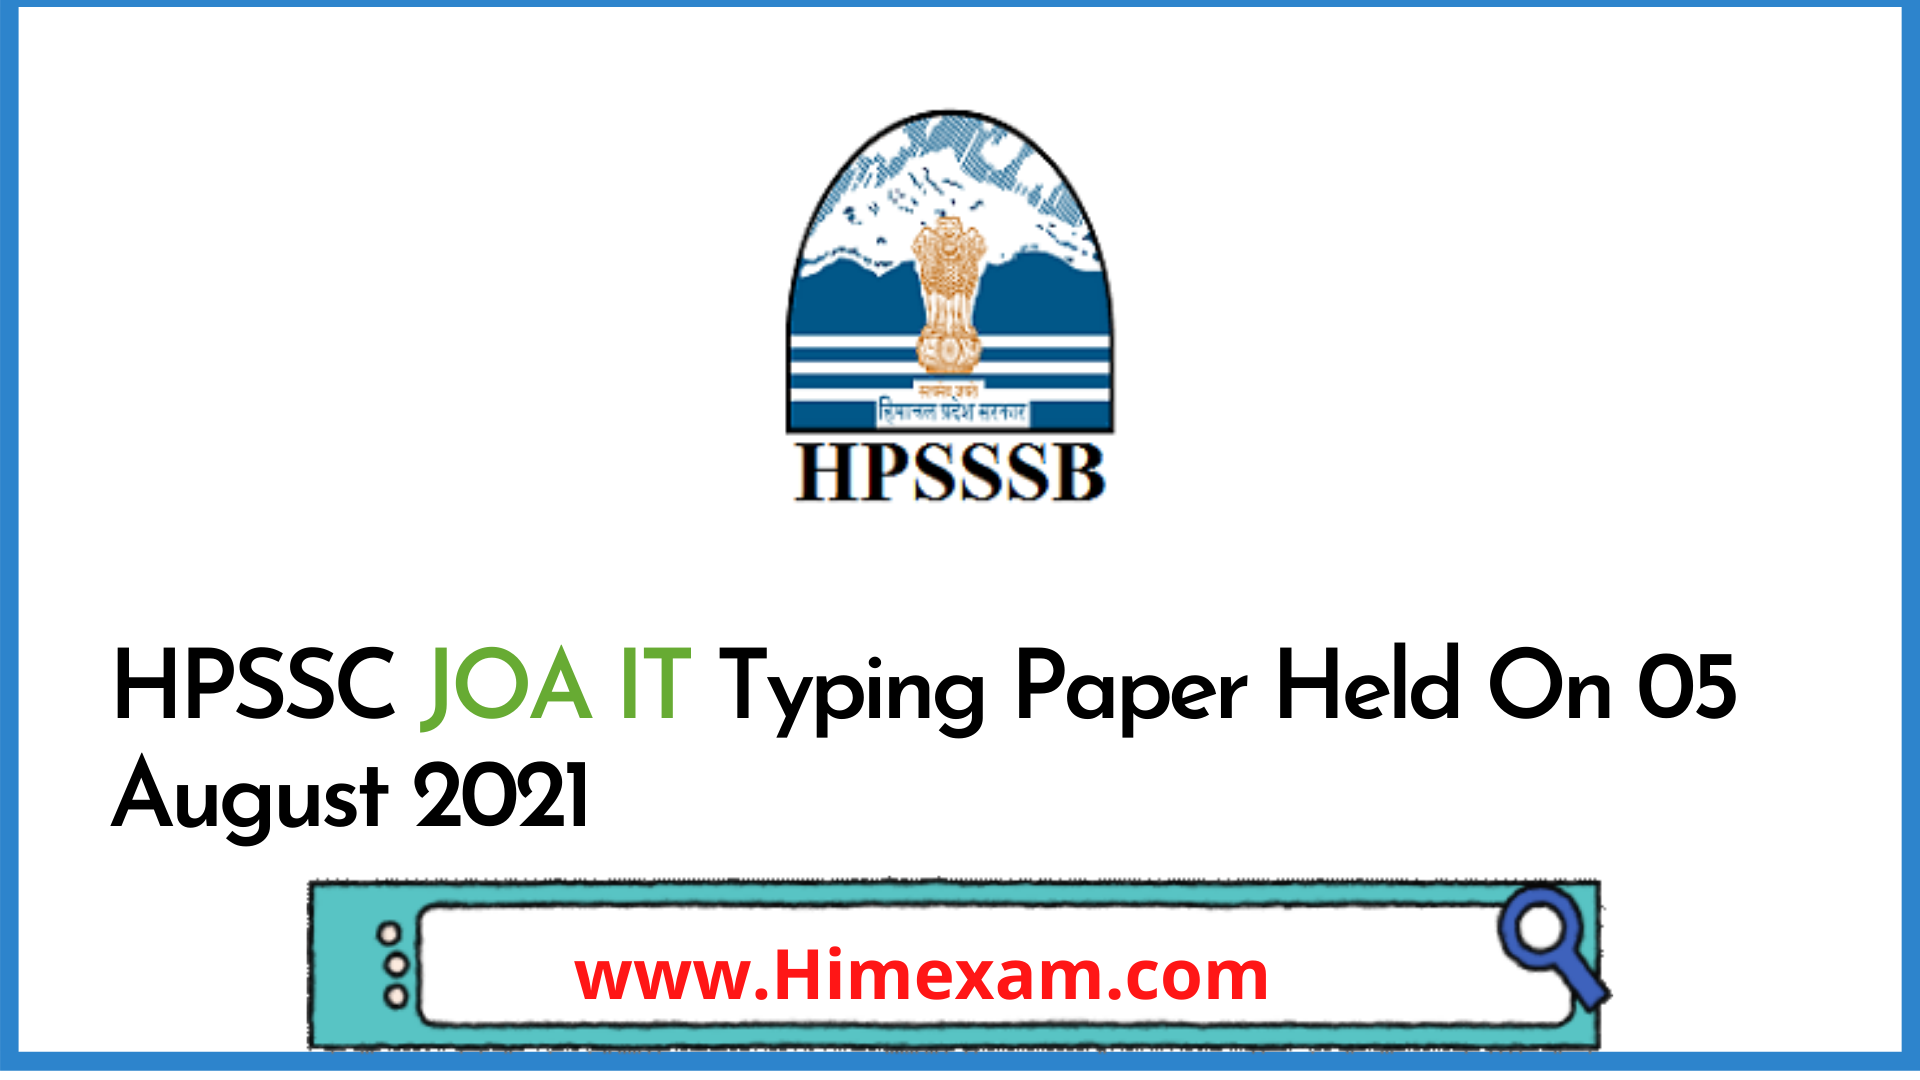 HPSSC JOA IT Typing Paper Held On 05 August 2021